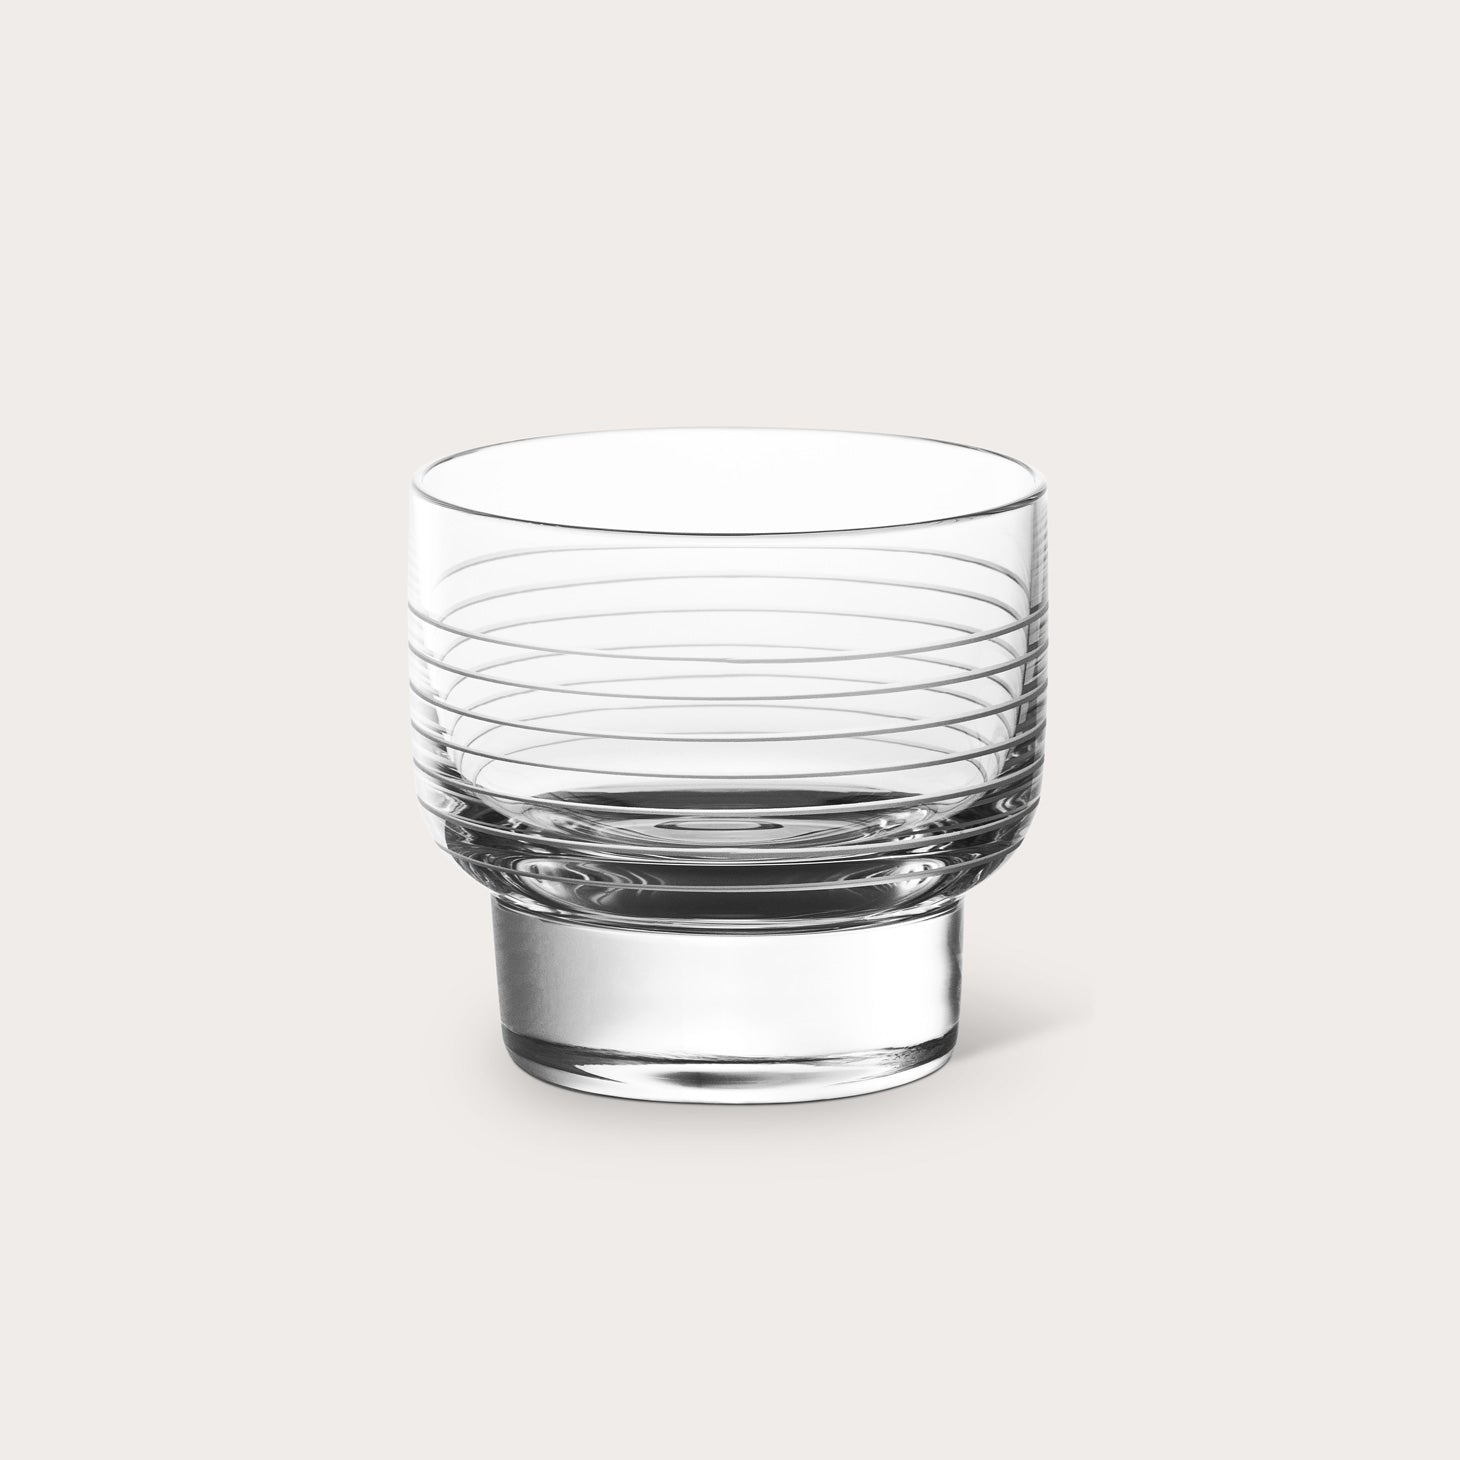 Otto Tumbler Set of 2 Accessories Yabu Pushelberg Designer Furniture Sku: 110-100-10011